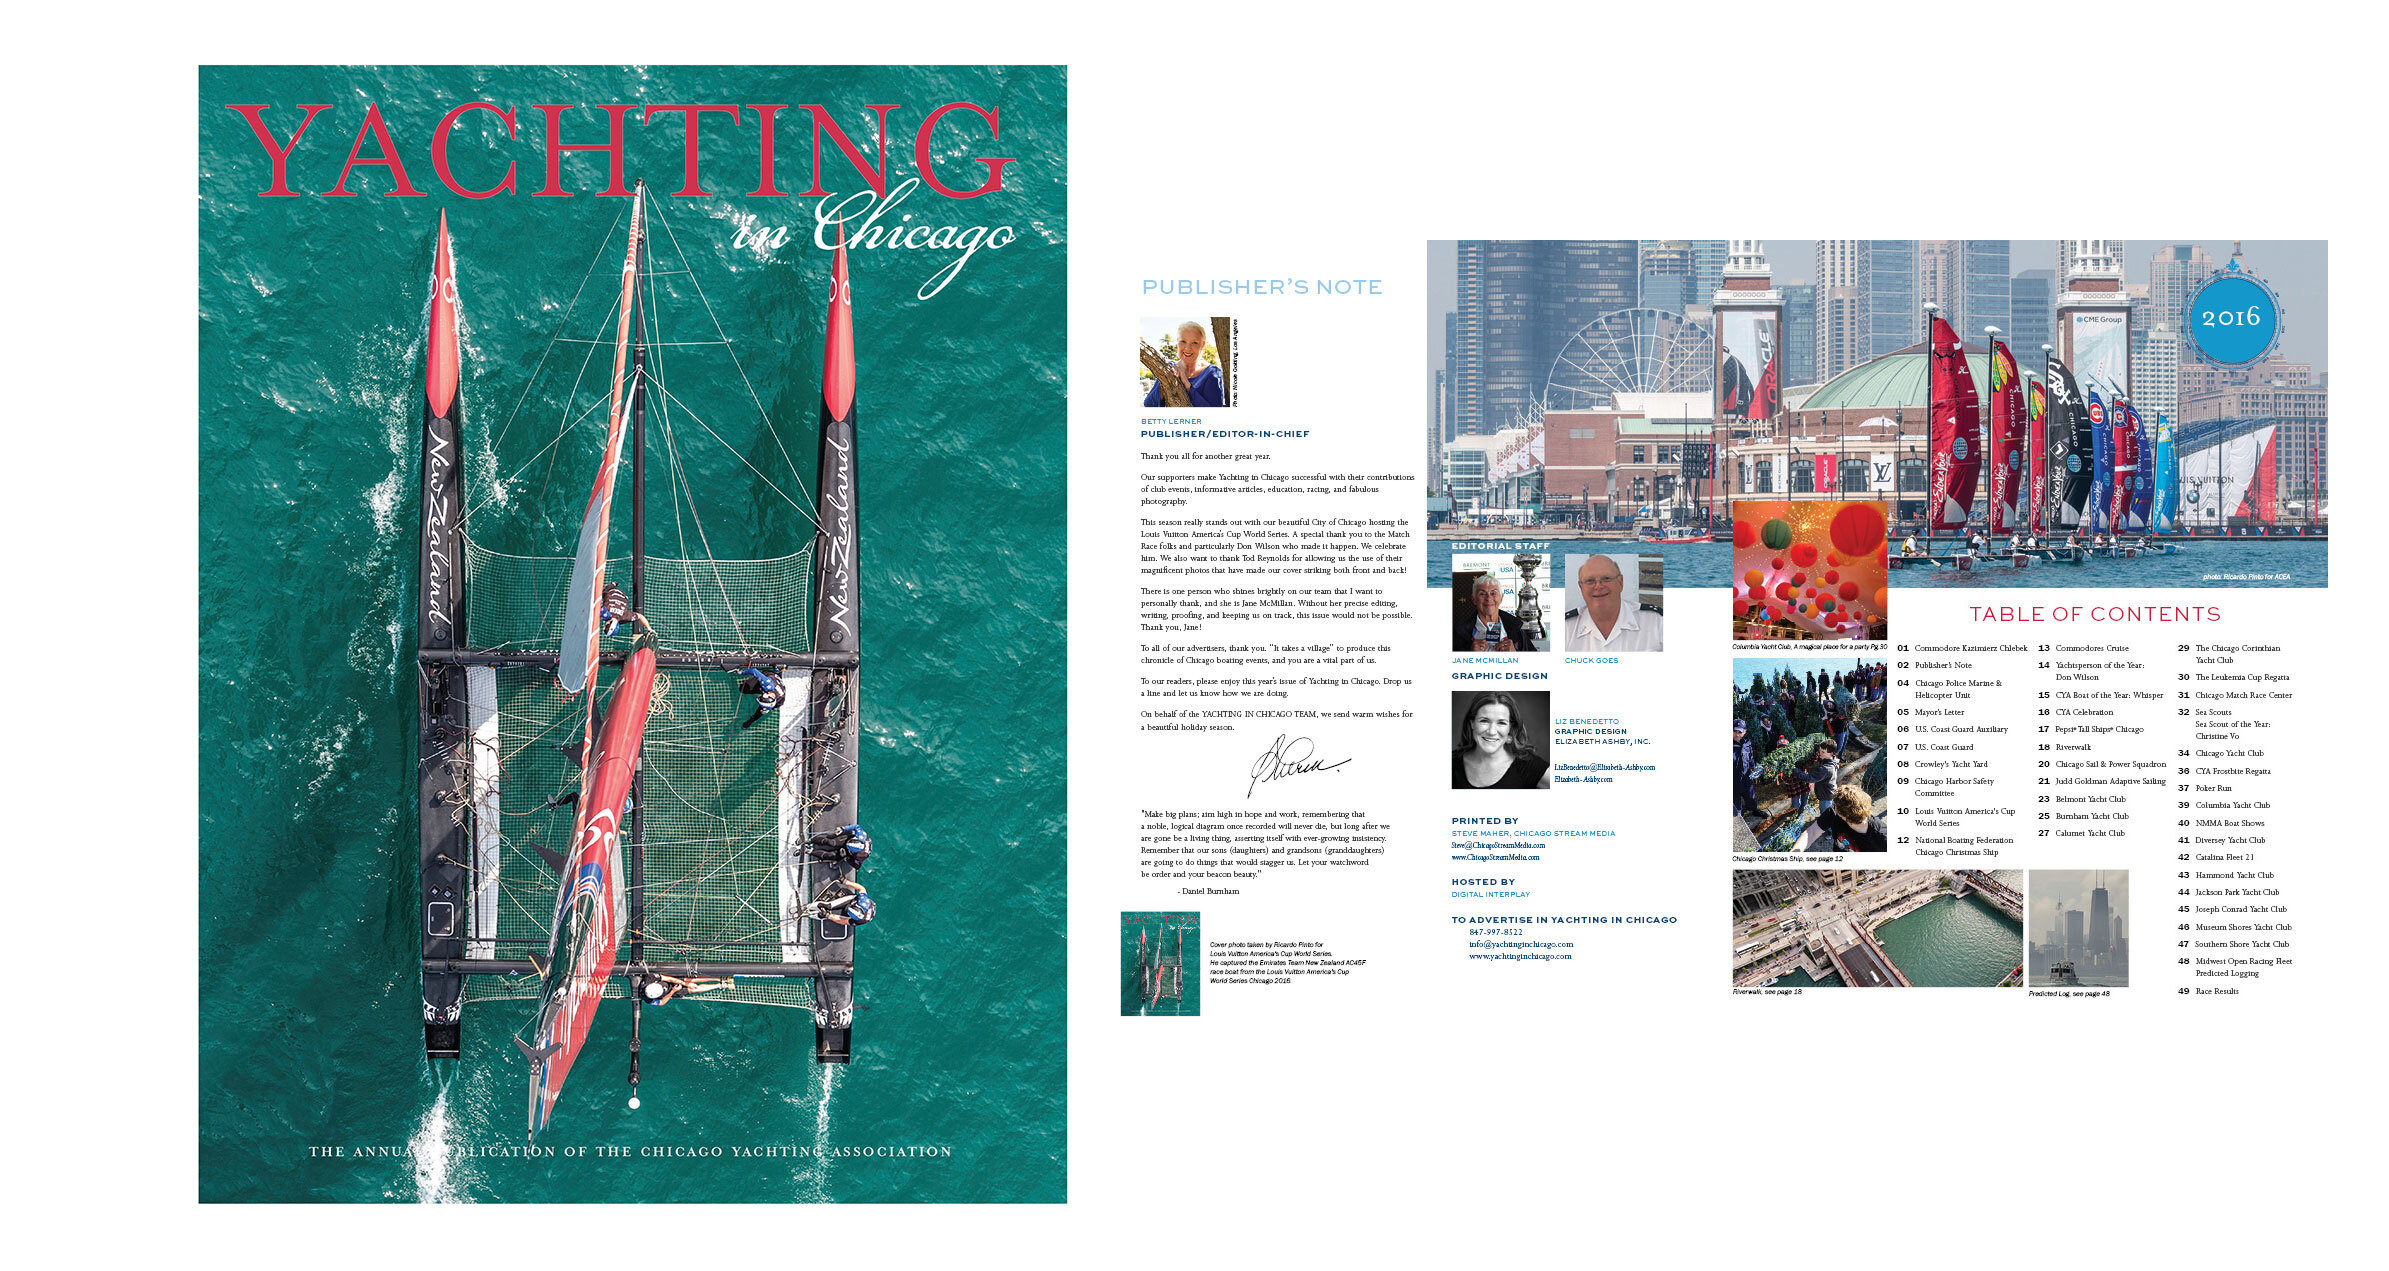 Yachting in Chicago